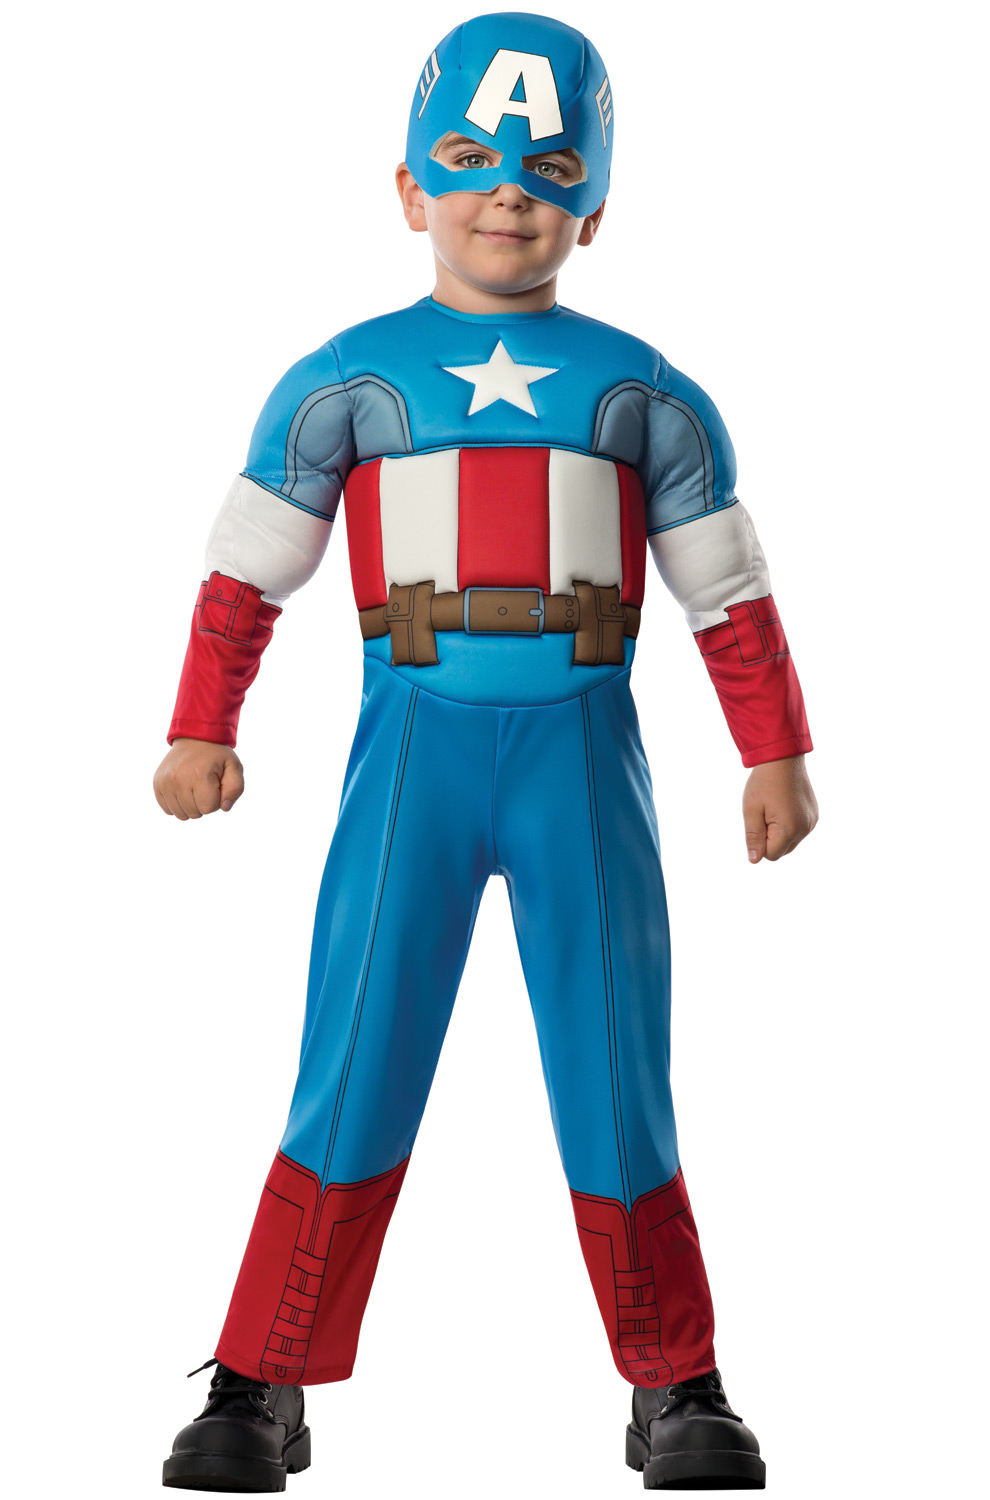 Captain America Costumes & Costume Ideas. In , Captain America first appeared in a comic series by Timely Comics, a predecessor of Marvel Comics. He stood as a symbol of courage and freedom during World War II, and was even the first Marvel character to appear outside of comic books in a black-and-white serial film in